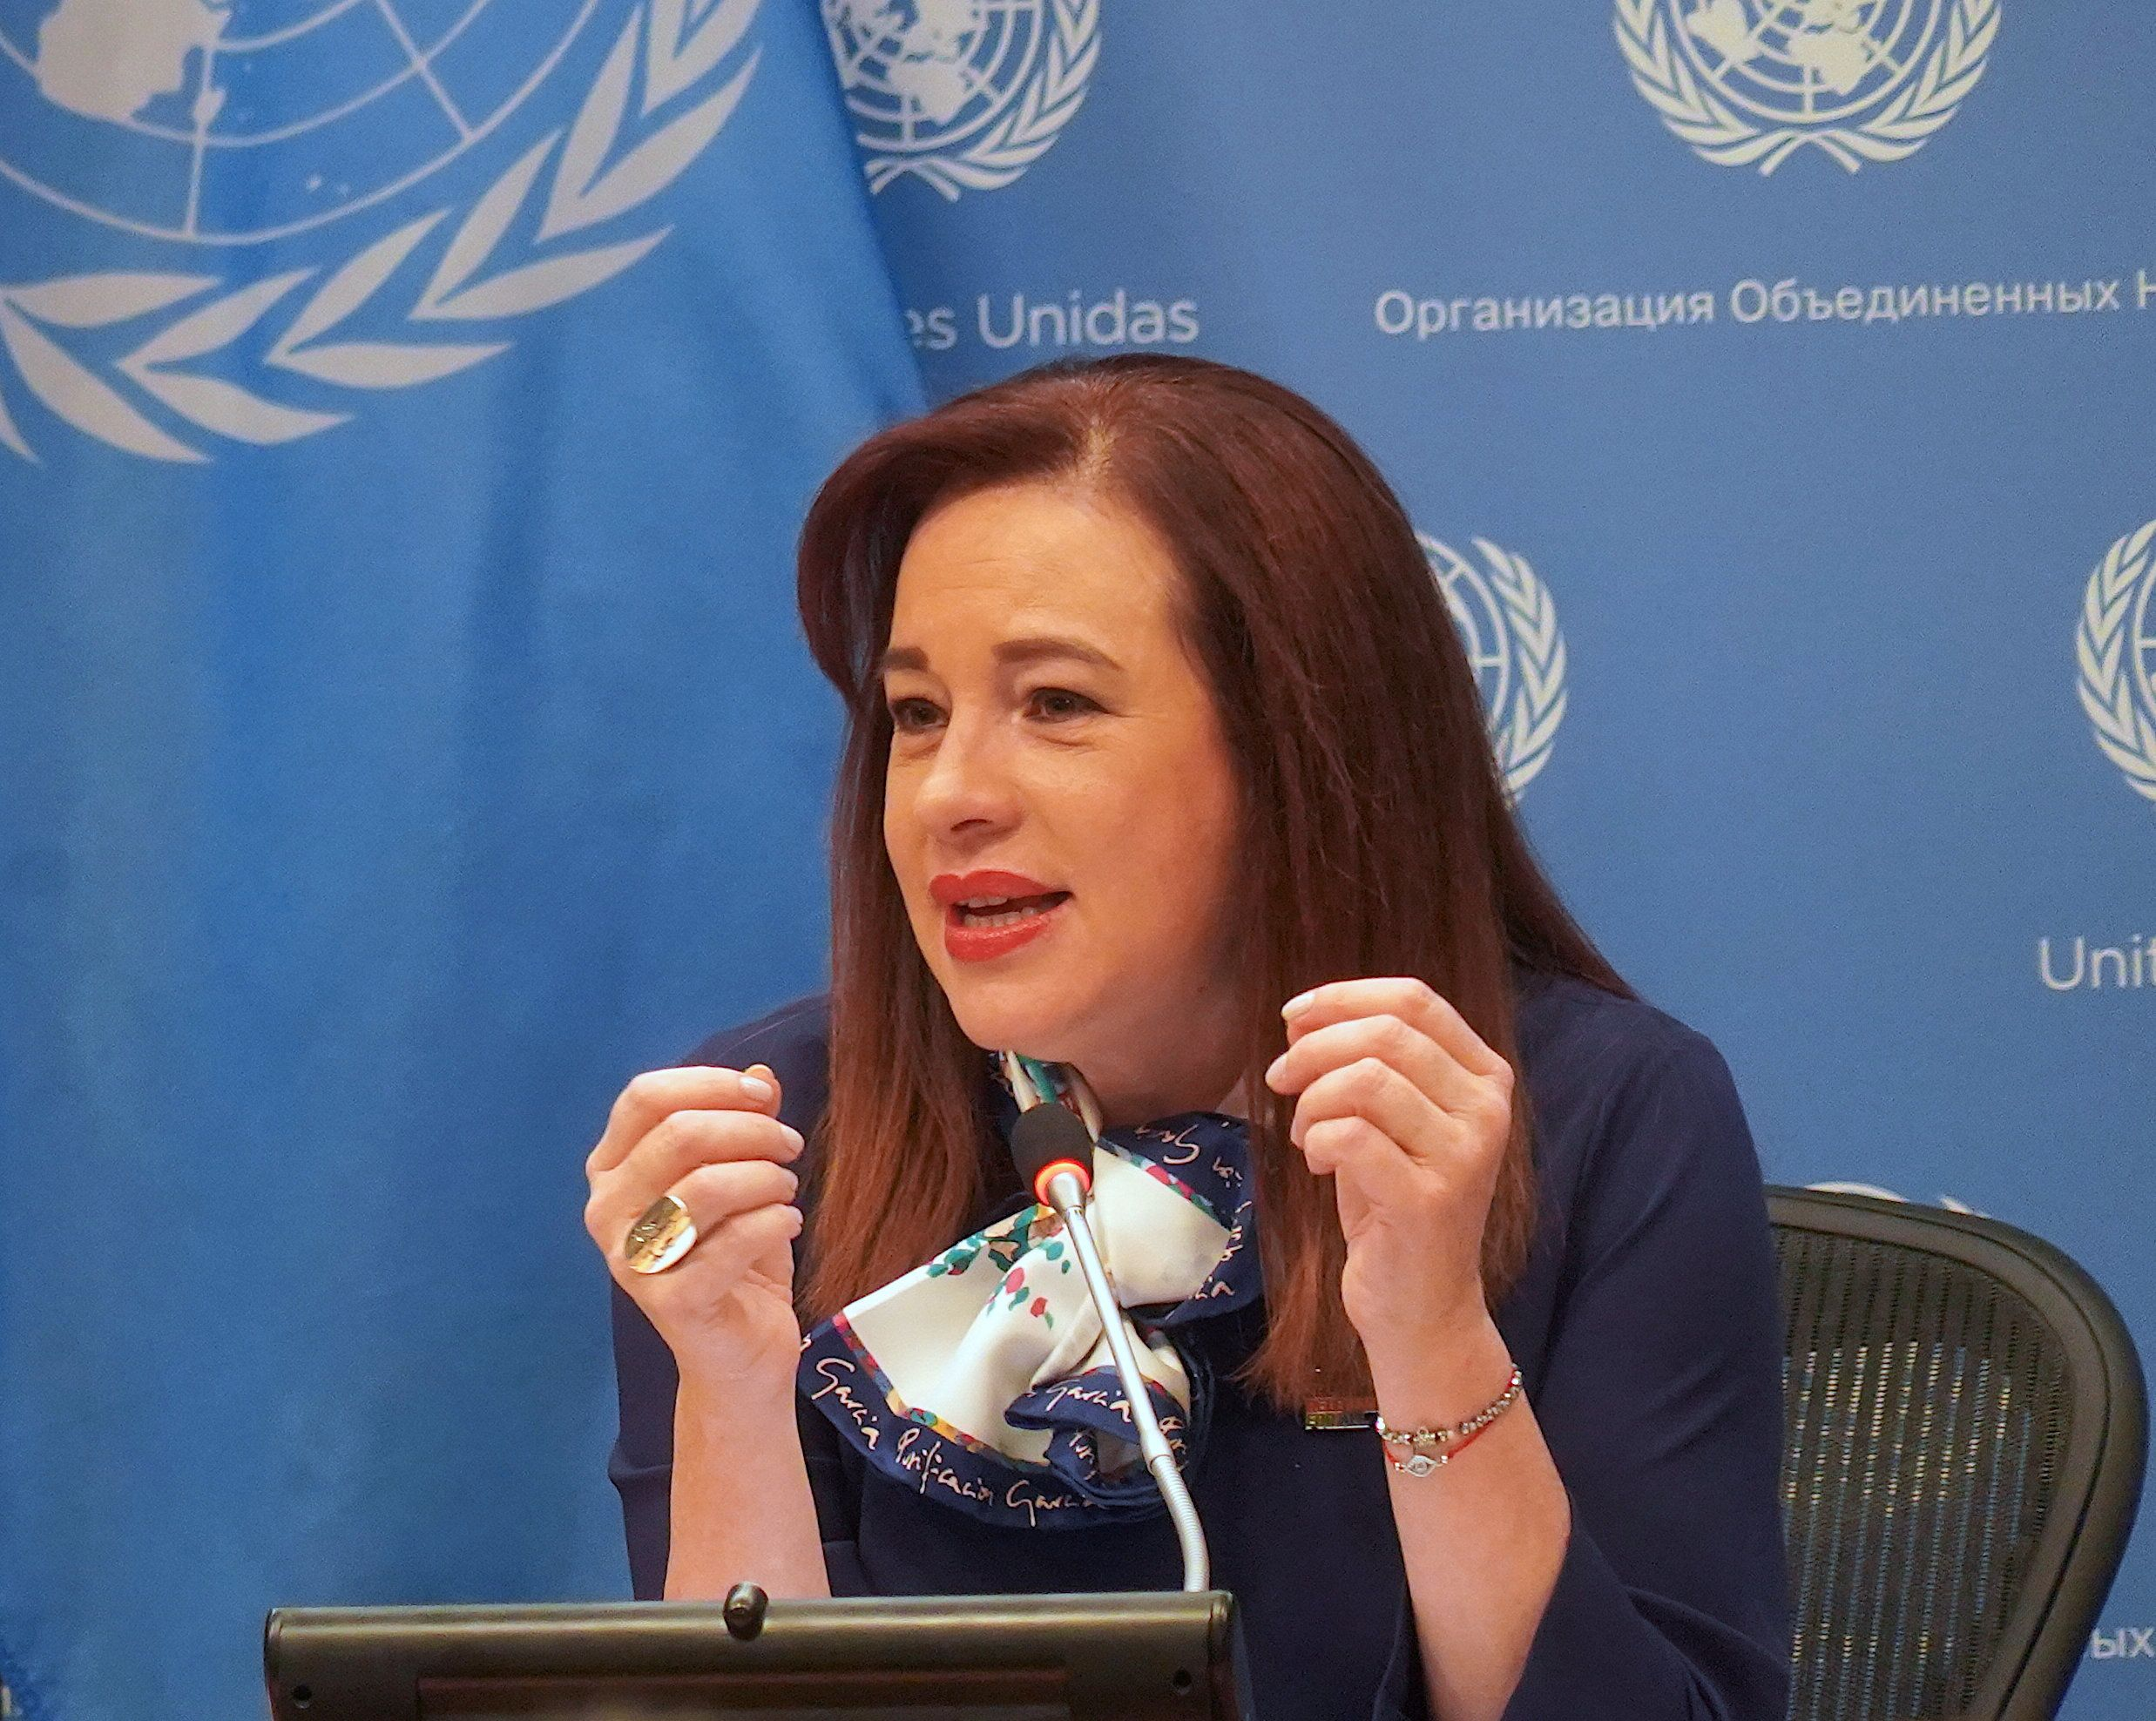 Second woman President of the United Nations General Assembly, María Fernanda Espinosa Garcés, had a press briefing on the International Women's Day at the United Nations Headquarters, New York, USA, on 8 March 2019.   (Photo by Selcuk Acar/NurPhoto via Getty Images)